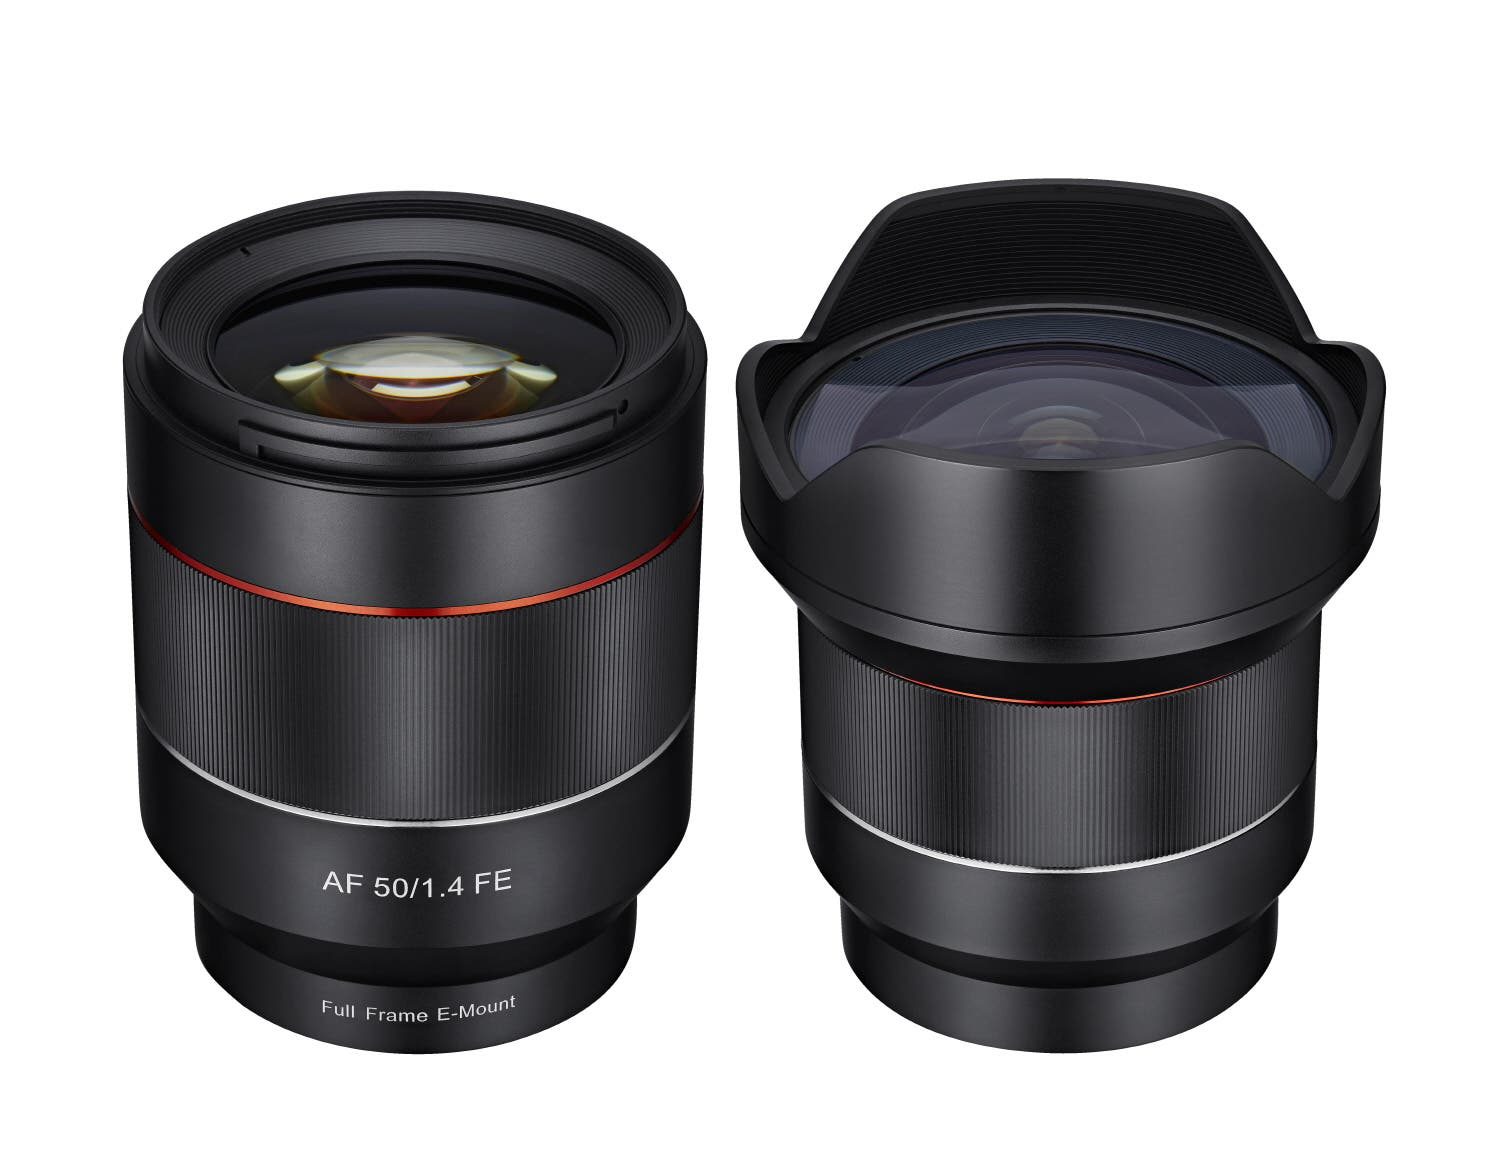 Samyang Announces New 14mm f2.8 and 50mm f1.4 Autofocus Lenses